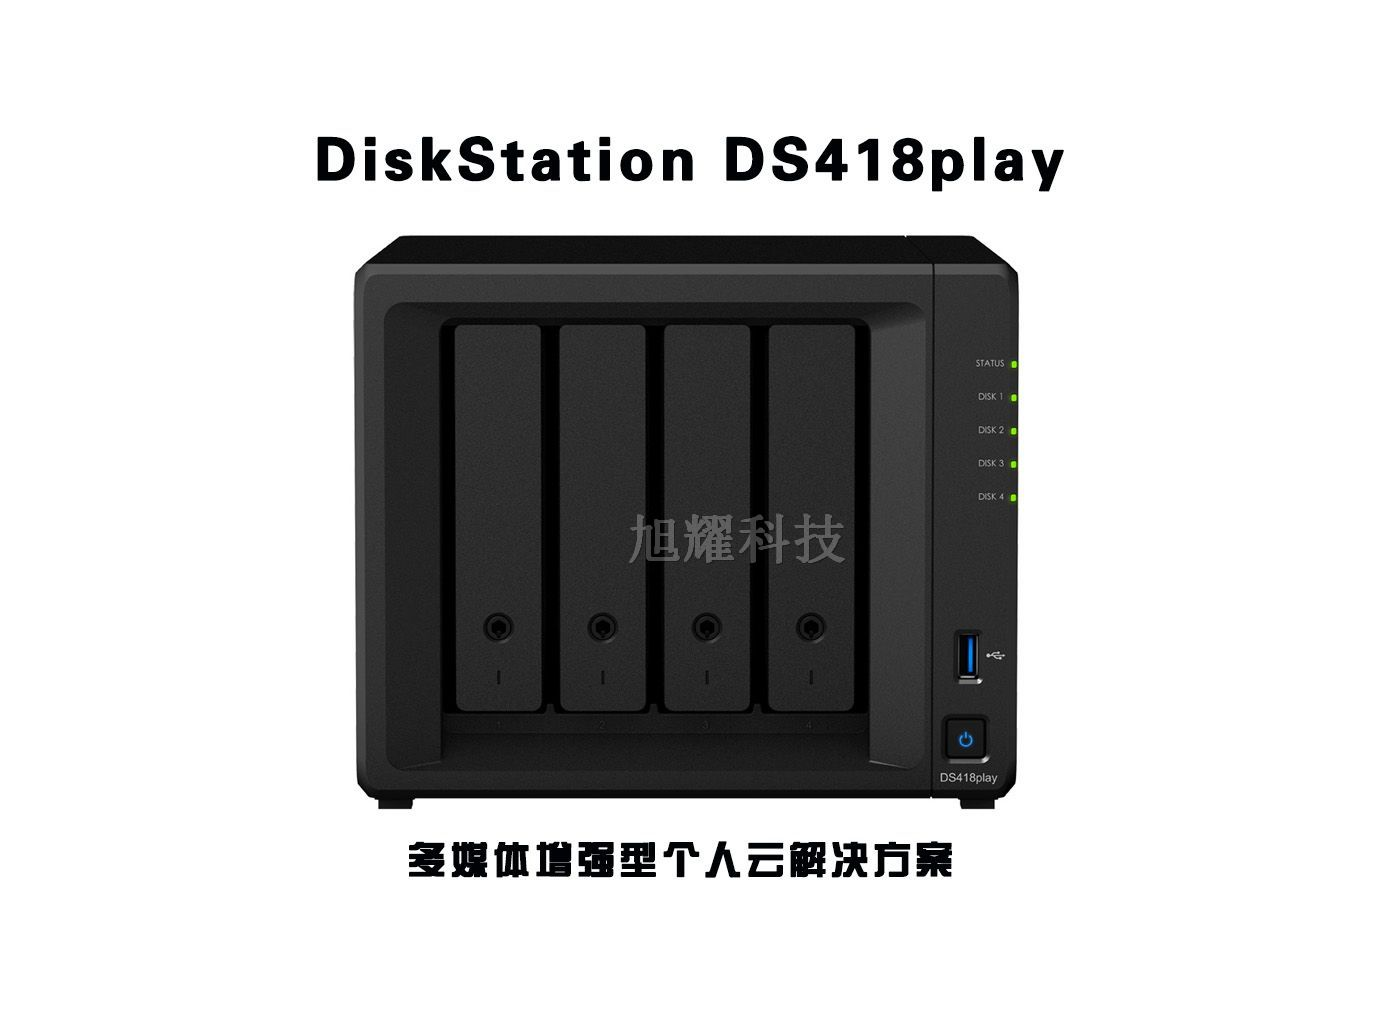 群晖 DiskStation DS418 Play